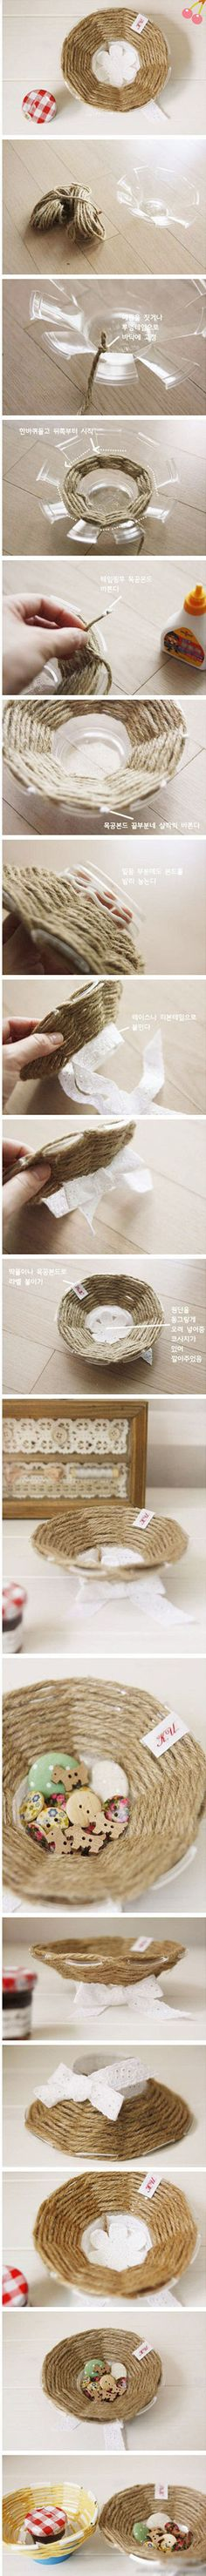 Diy Beautiful Basket | Click to see More DIY & Crafts Tutorials on Our Site.